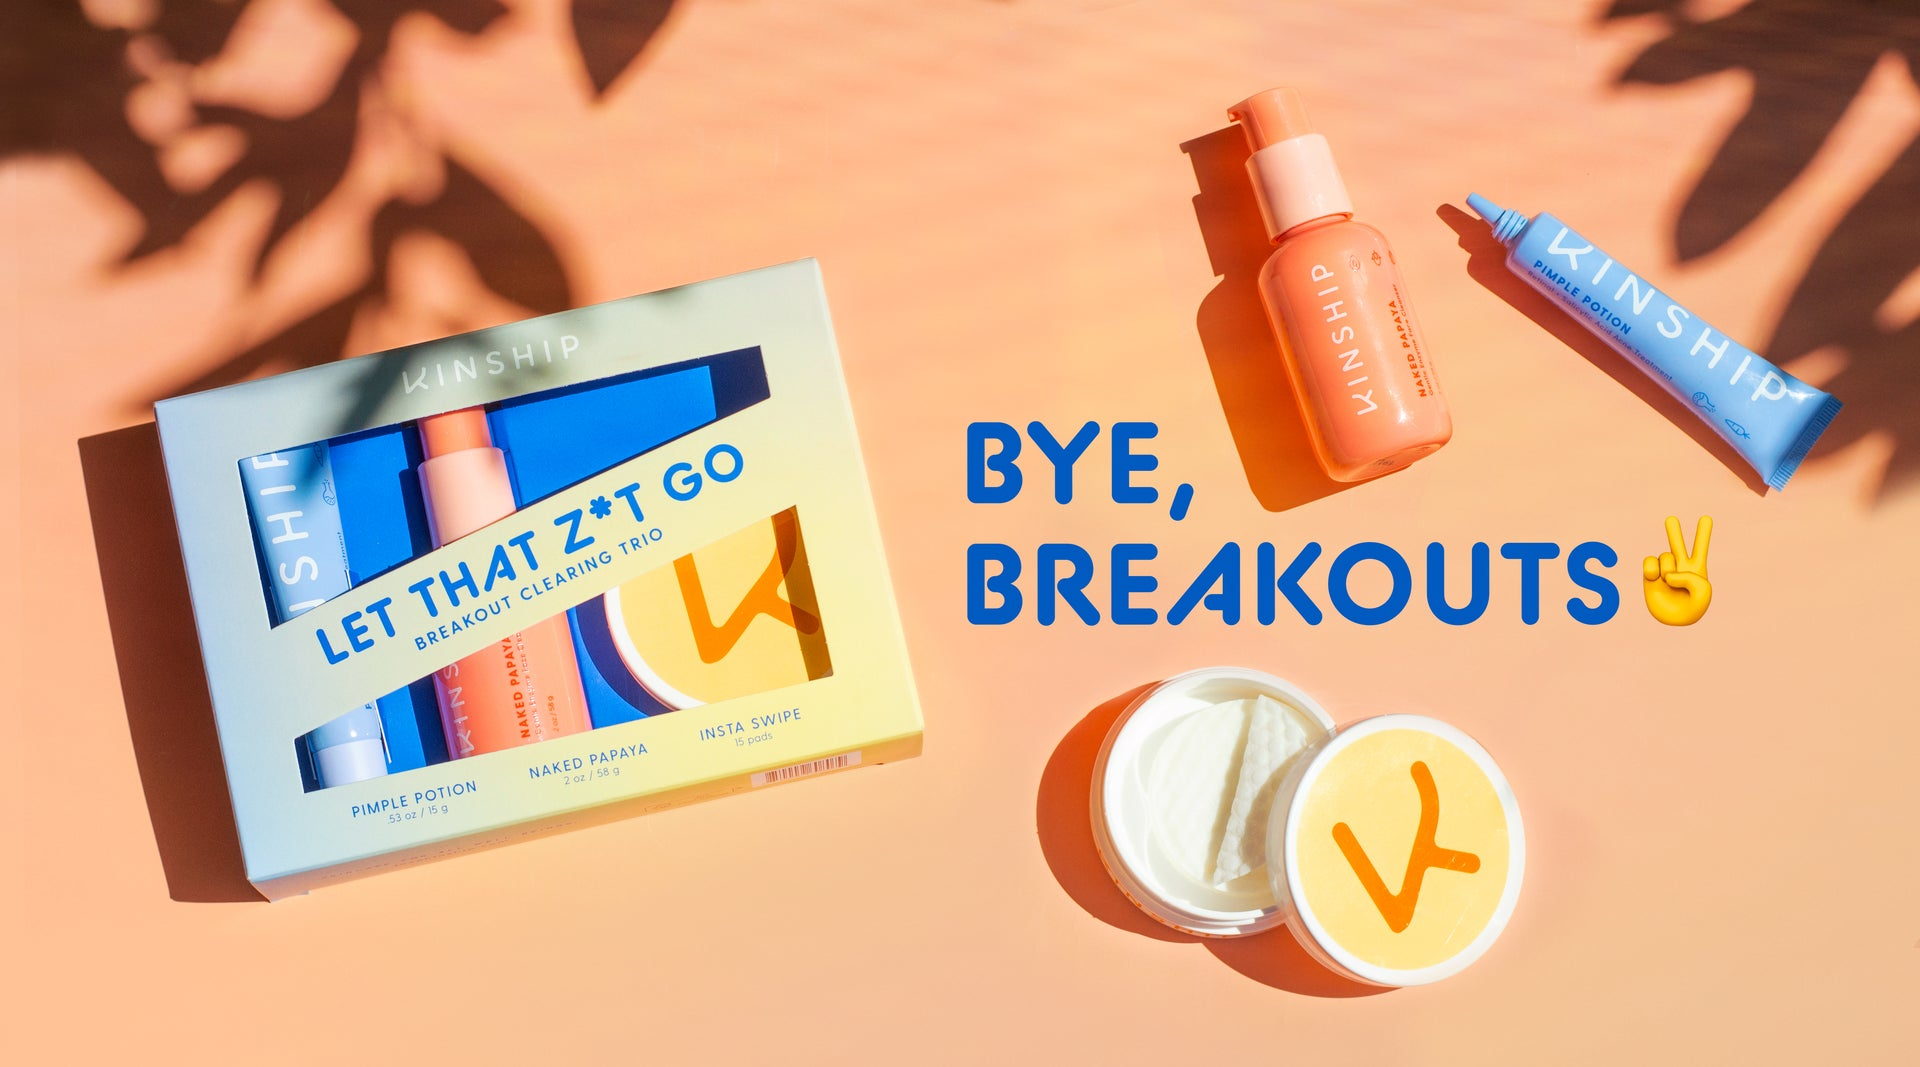 Introducing Let That Zit Go, a 3-piece acne-clearing set | Kinship